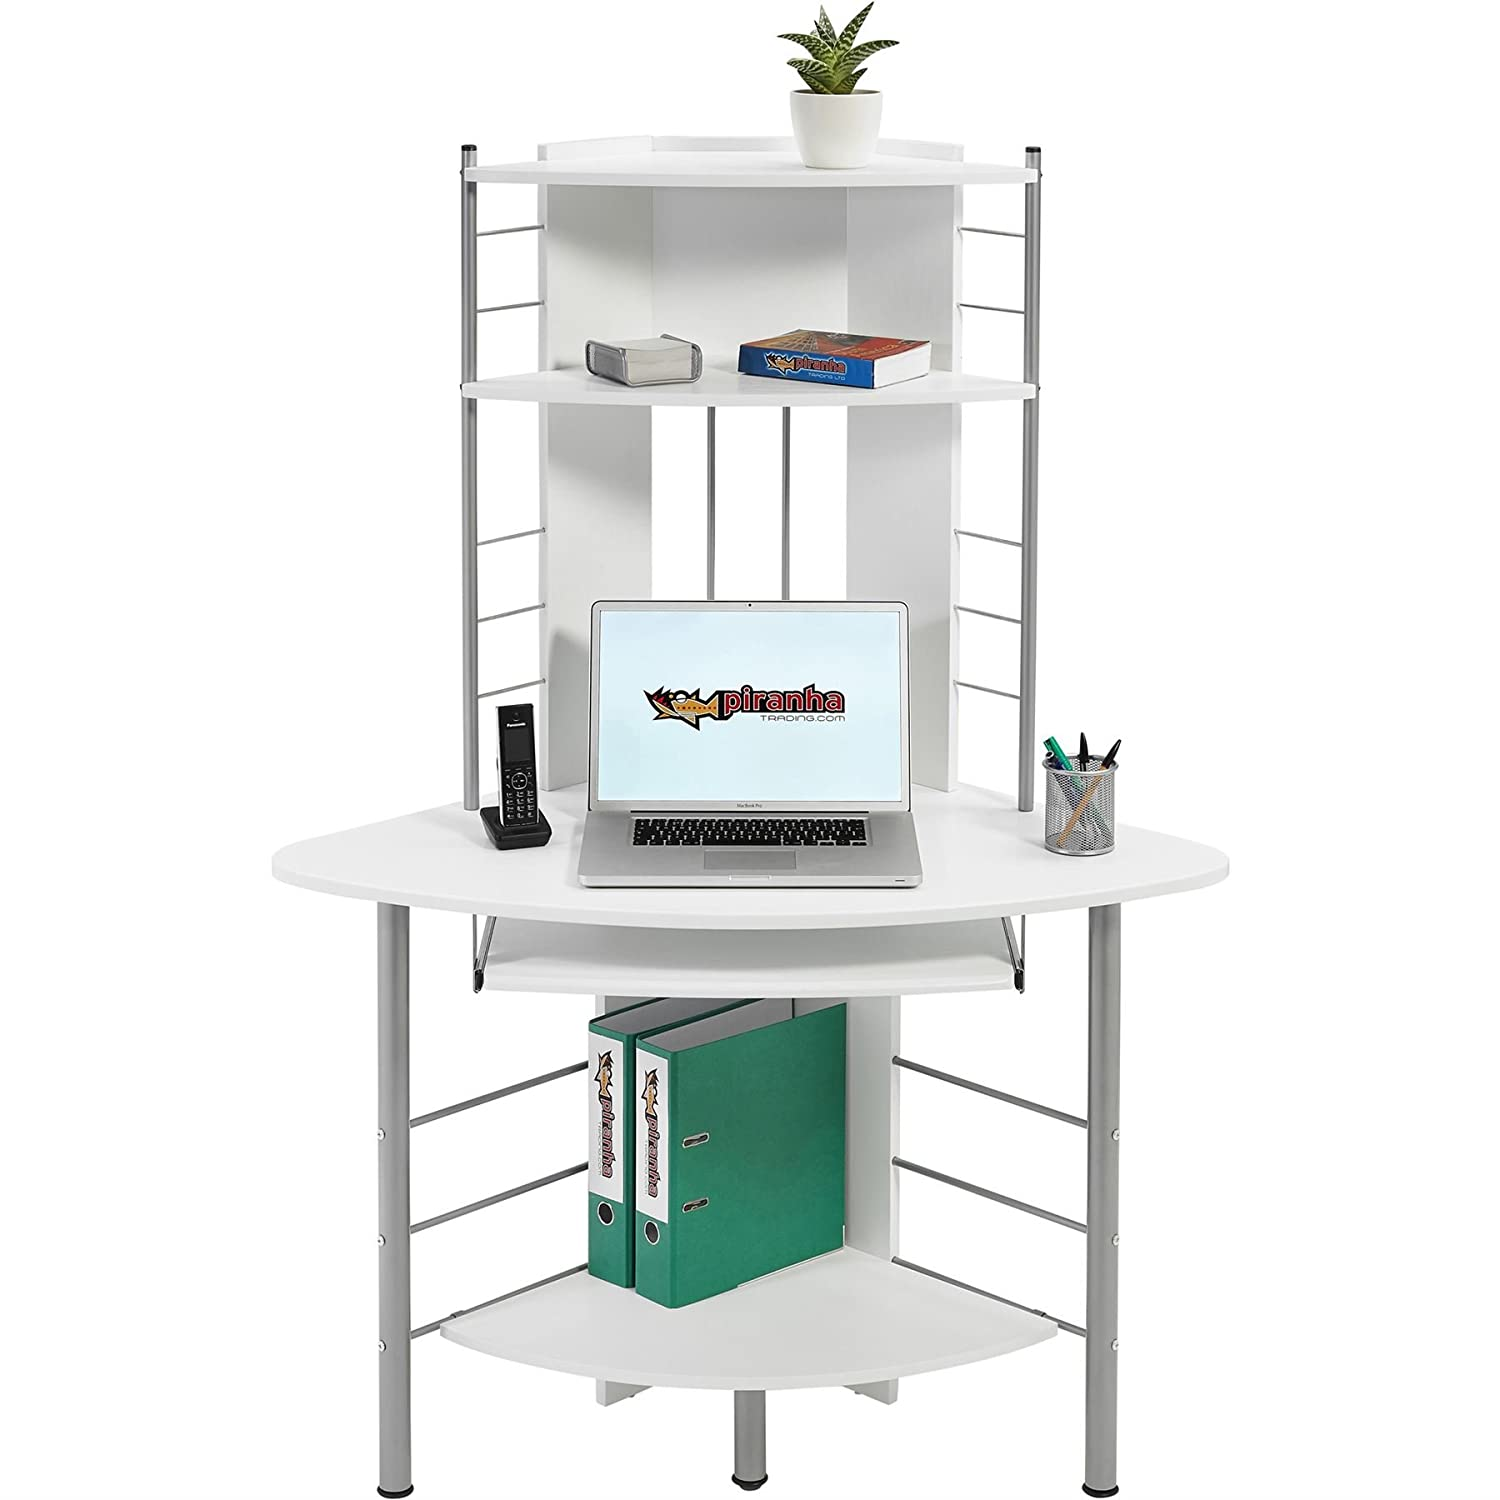 Compact corner computer desk and workstation with shelves for the home office piranha furniture oscar pc 8s amazon co uk kitchen home